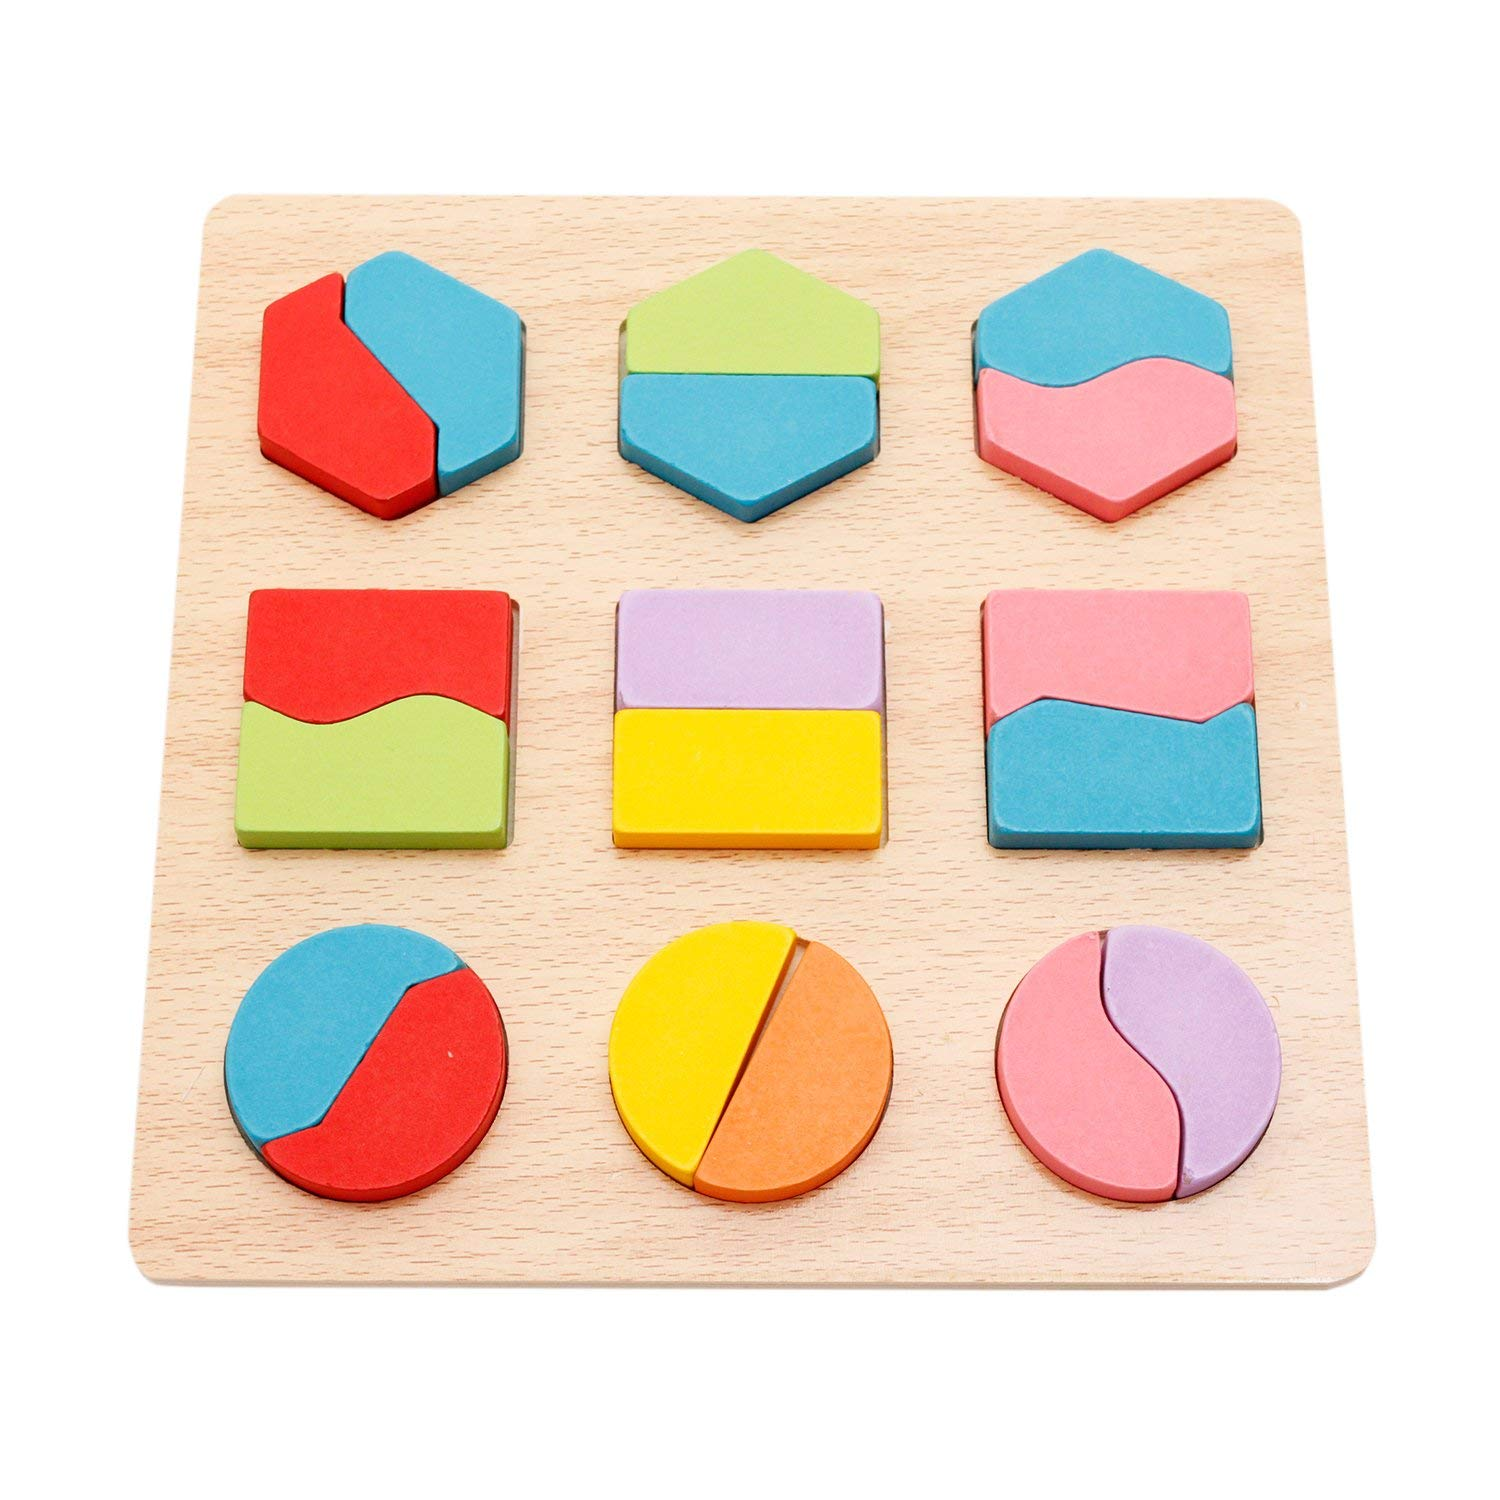 Style B WisdKids Wooden Blocks Shape Puzzles Geometry Construction Games Imagination DIY Toys Early Development Educational Toys for Toddlers Preschool Sorter Sorting Plate Puzzles